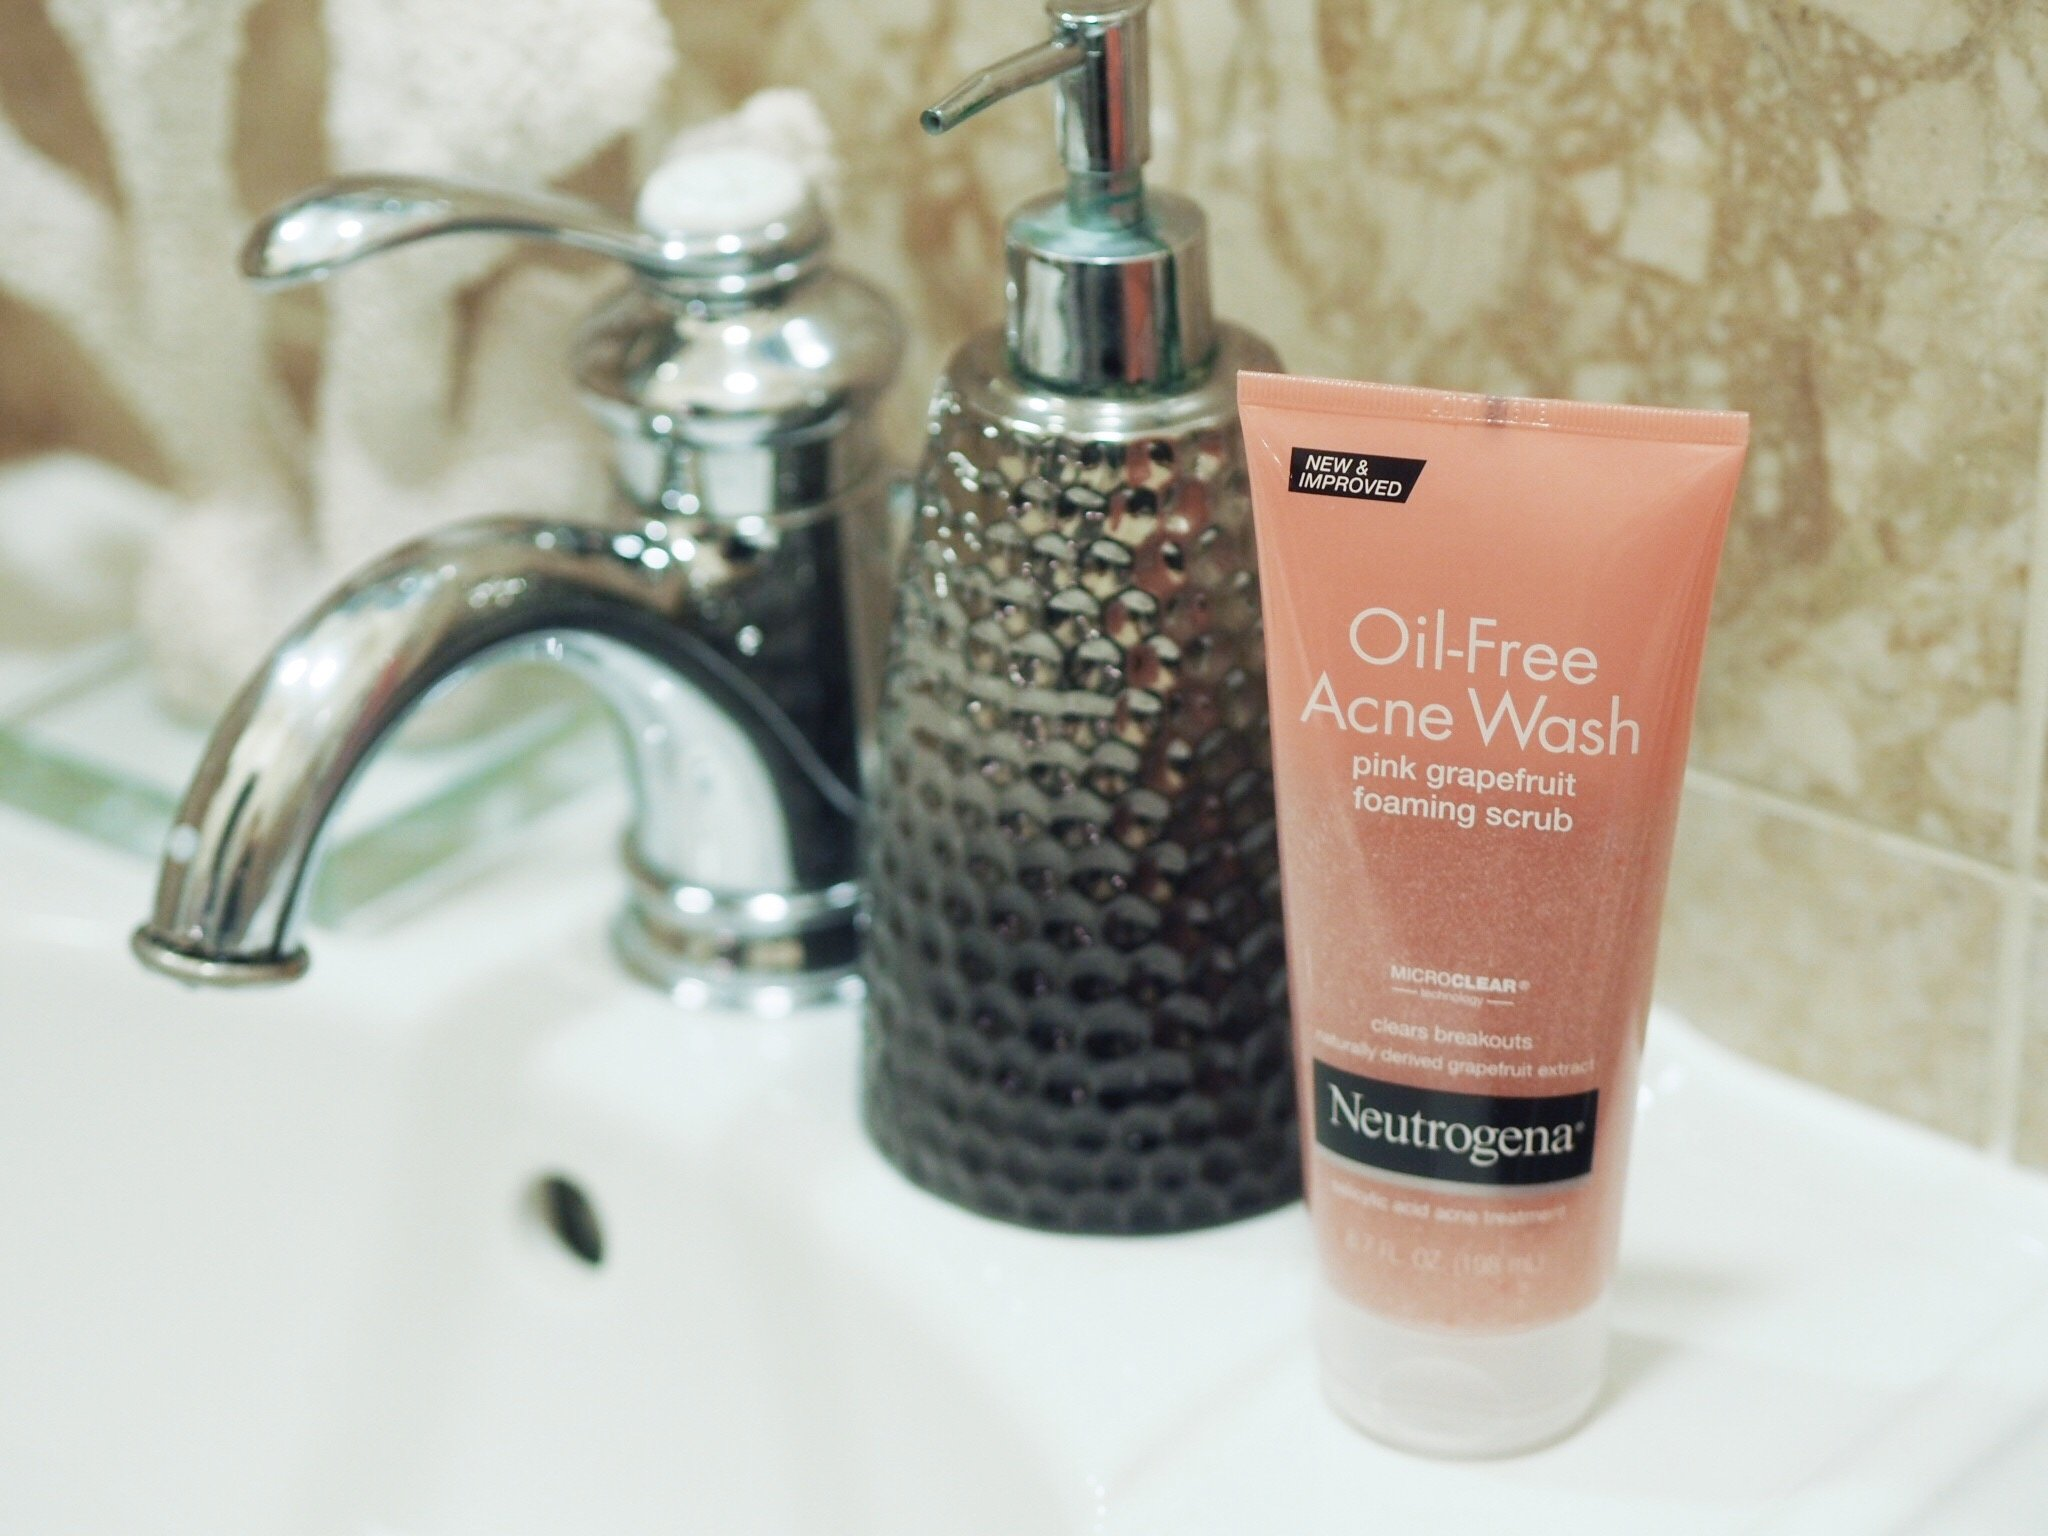 My summer skincare routine with Neutrogena! #ad